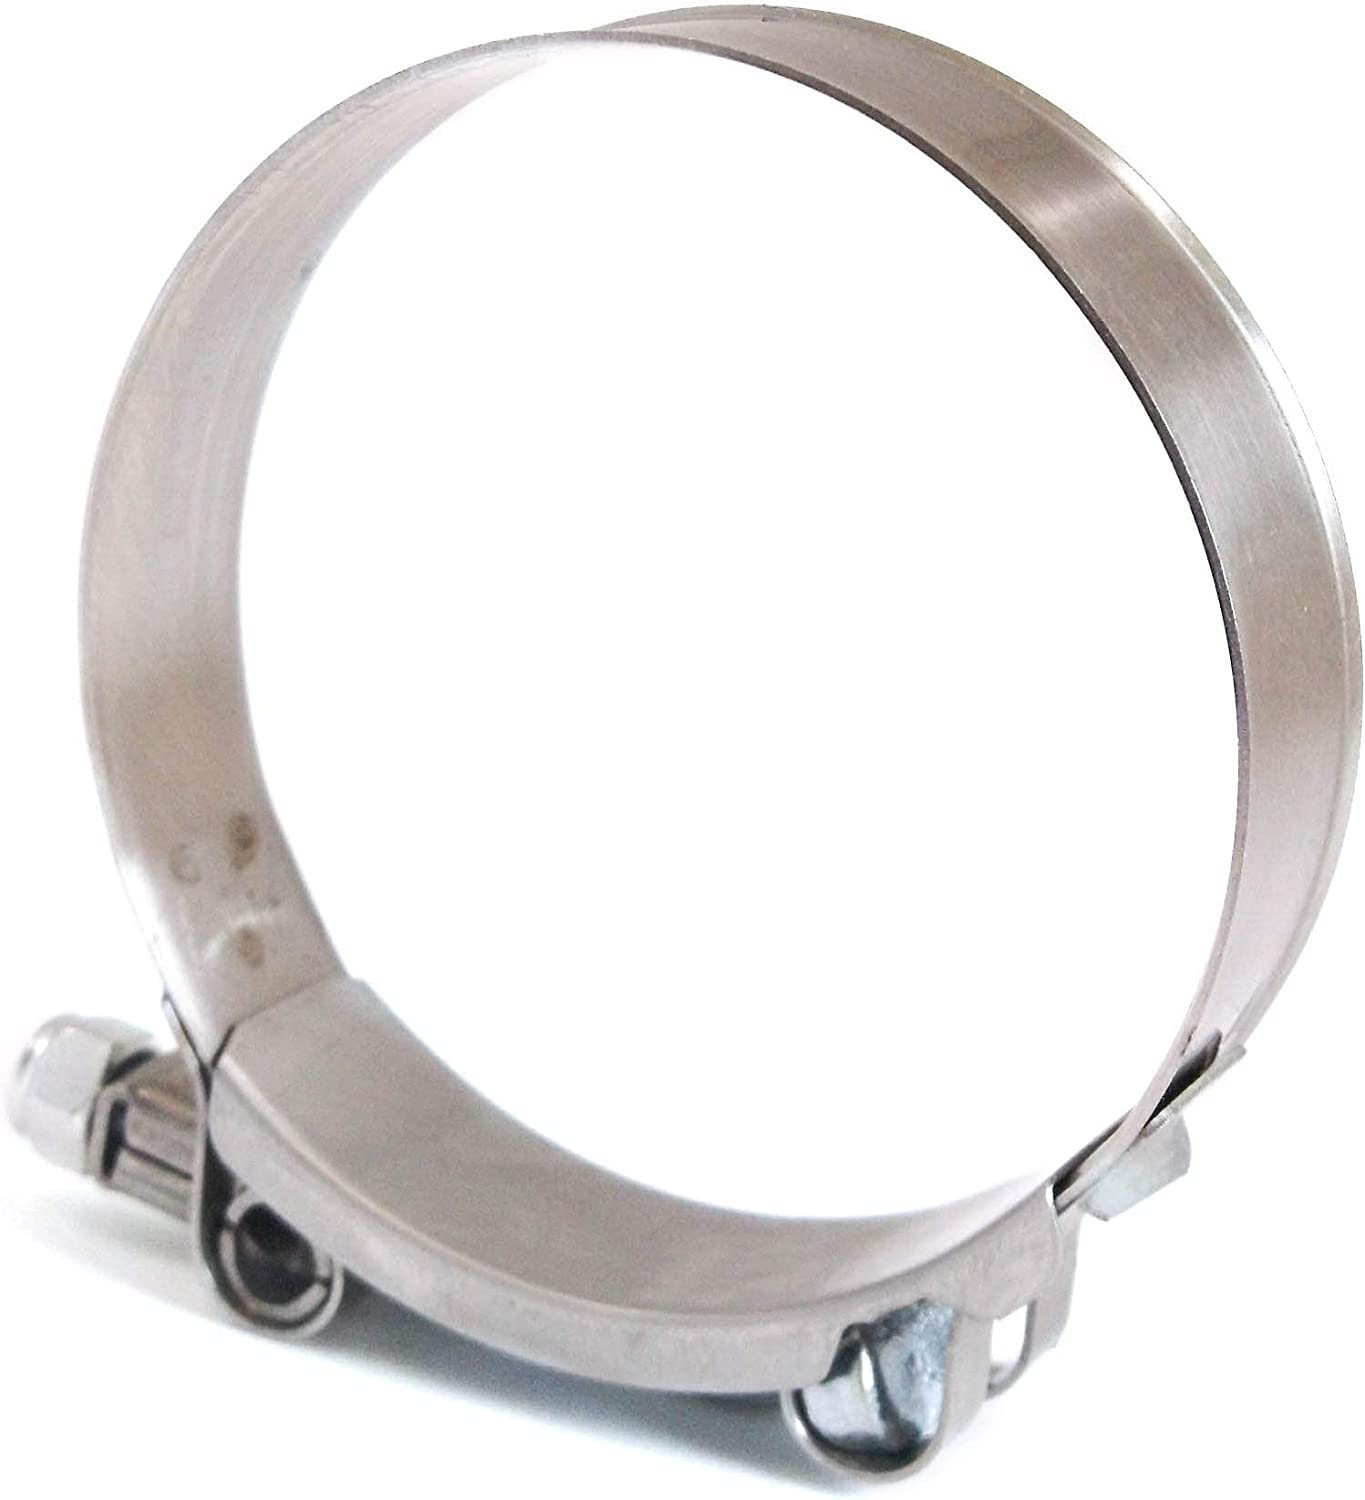 """97mm for 3.25/"""" inch Hose # SSTC-89-97 HPS Stainless Steel T-Bolt Clamp 89mm"""